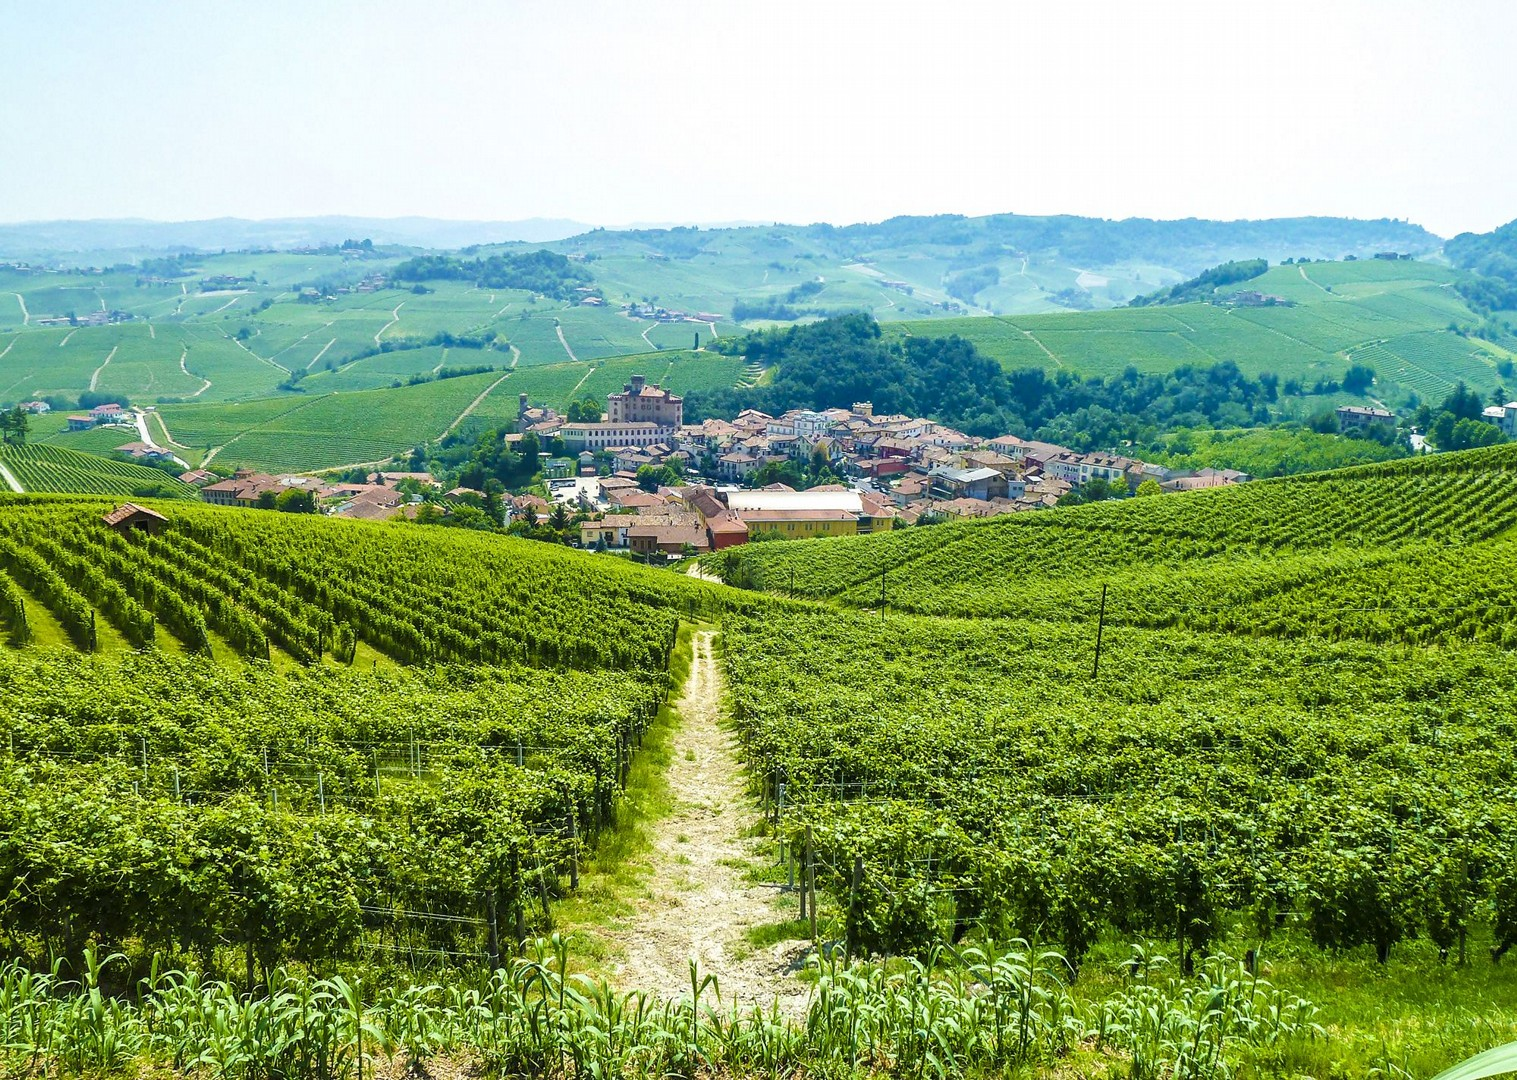 wine-country-easy-cycling-ebike-electric-bike-tour-holiday-italy-piemonte.jpg - Italy - Piemonte - Vineyards and Views - Self-Guided Leisure Cycling Holiday - Italia Leisure and Family Cycling